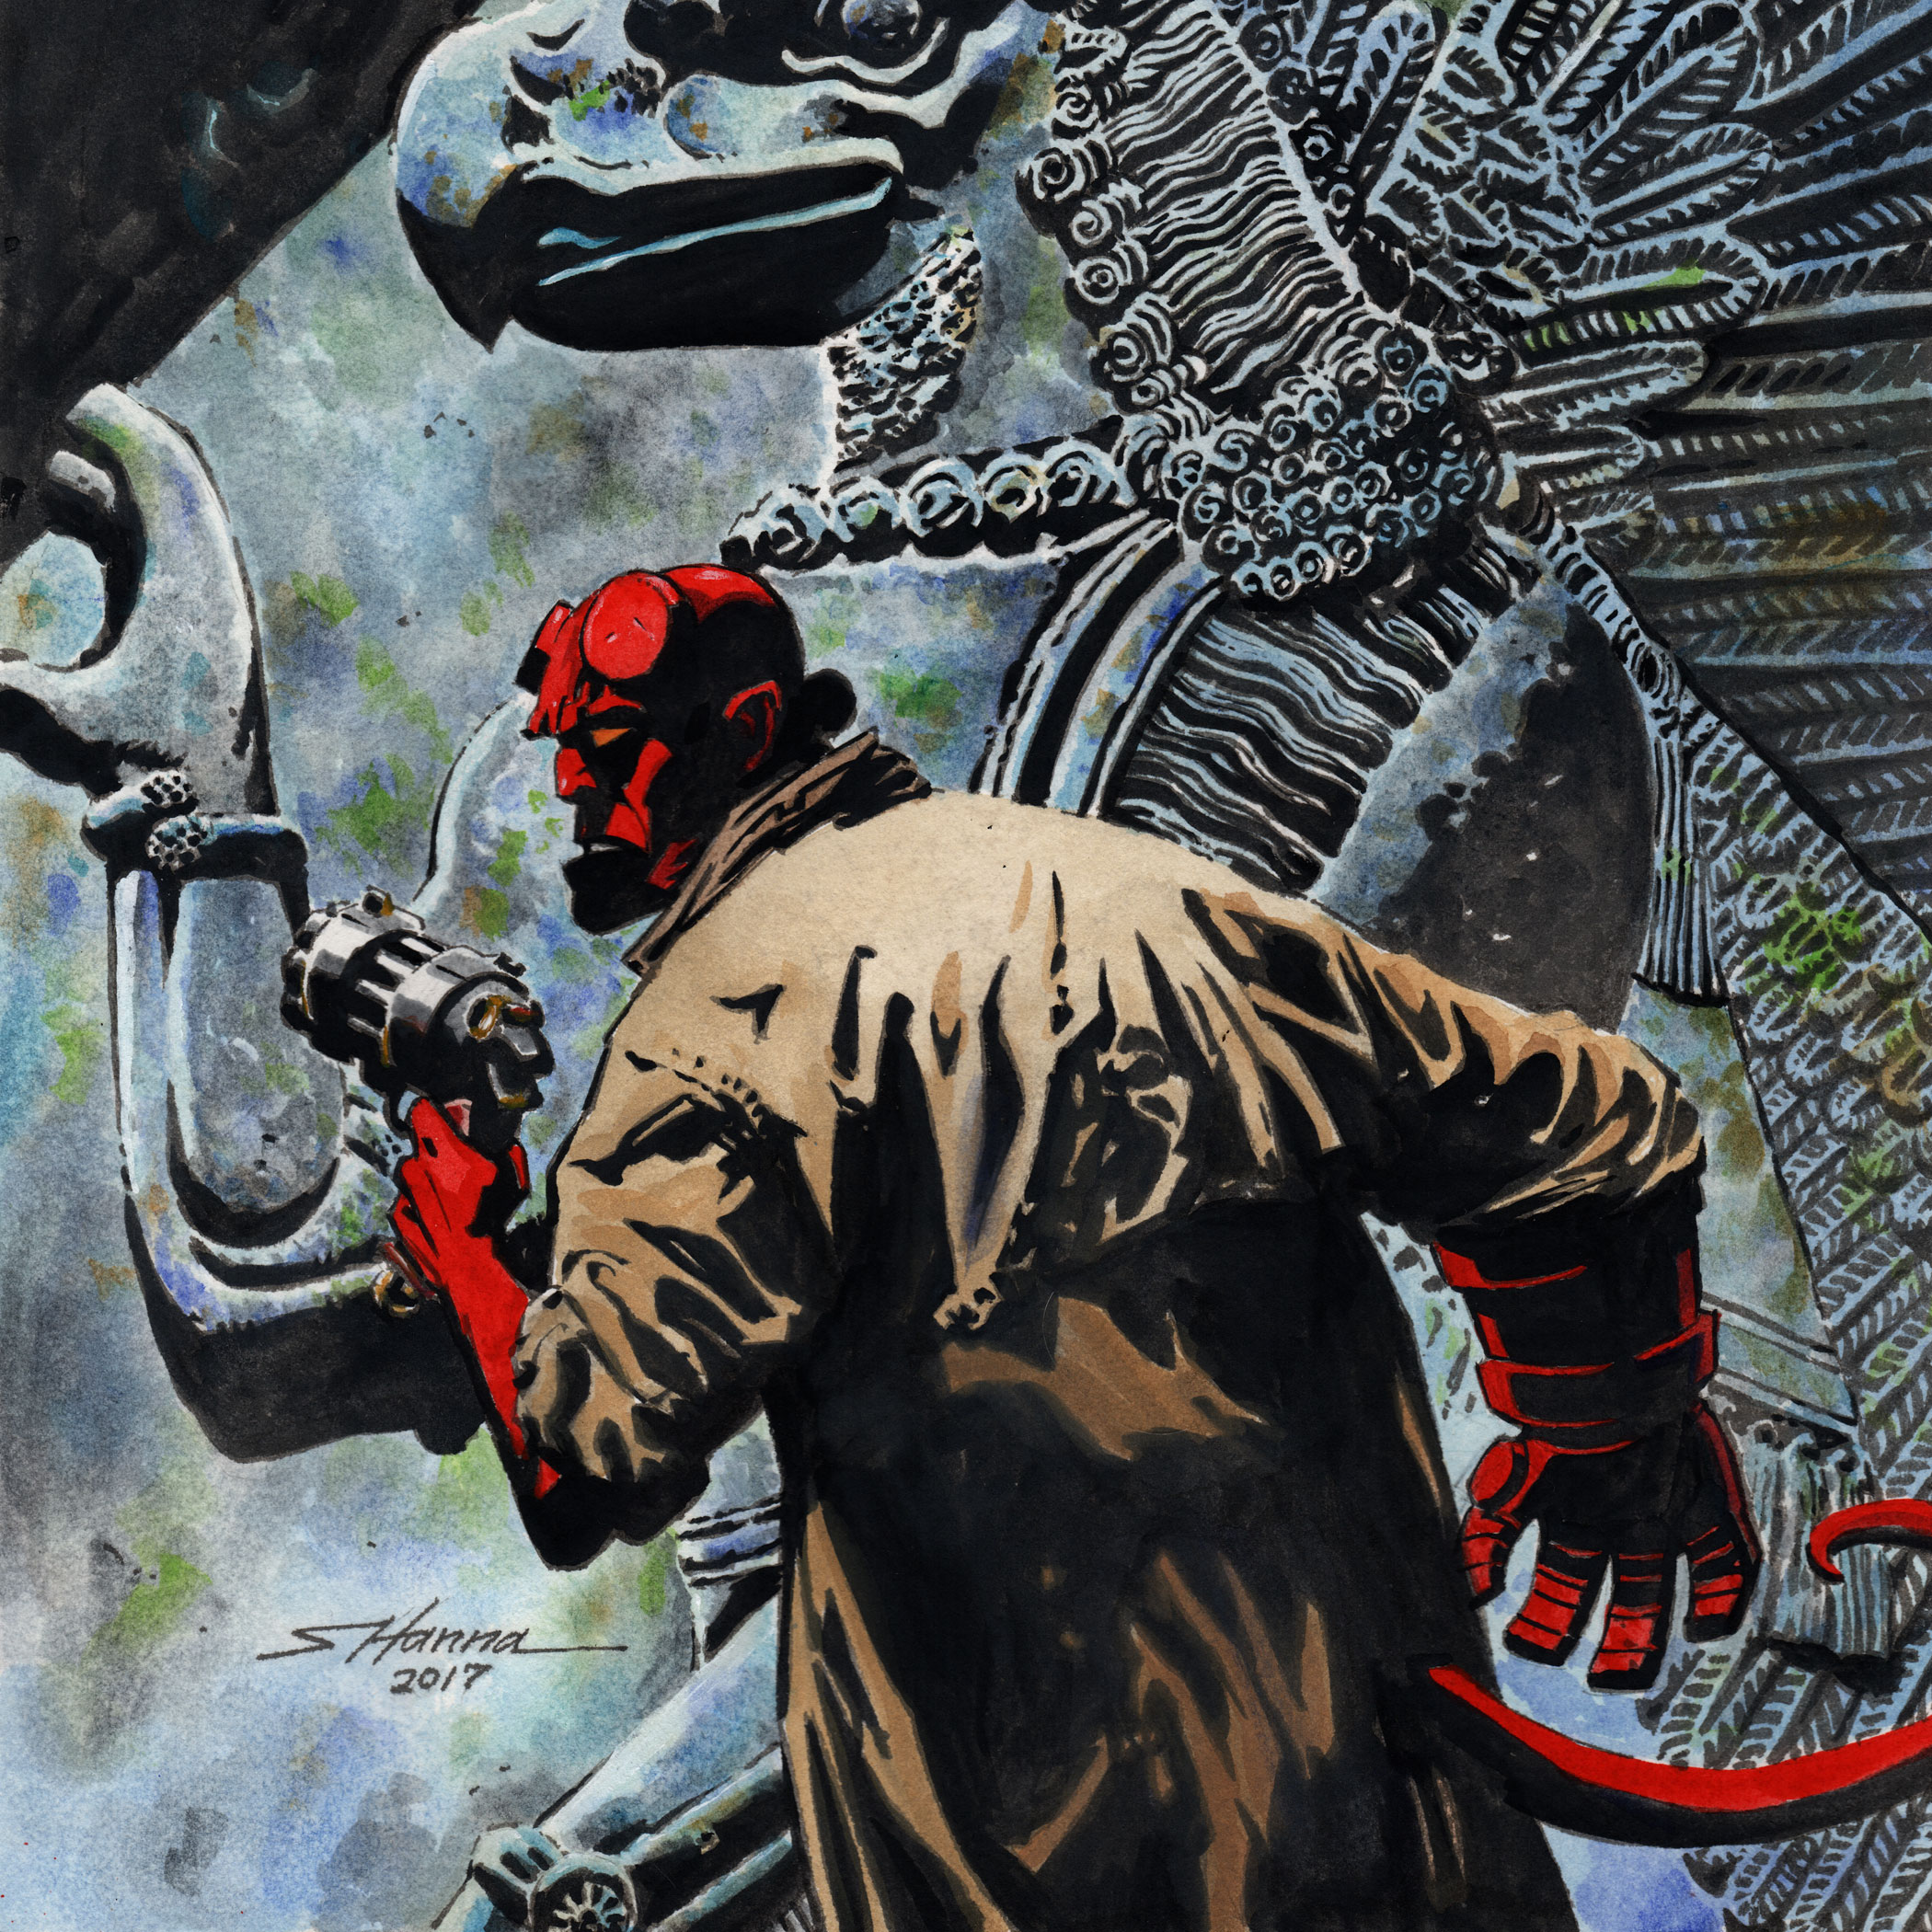 A Tribute to Mike Mignola's Hellboy - Oct 28, 2017 – Jan 29, 2018